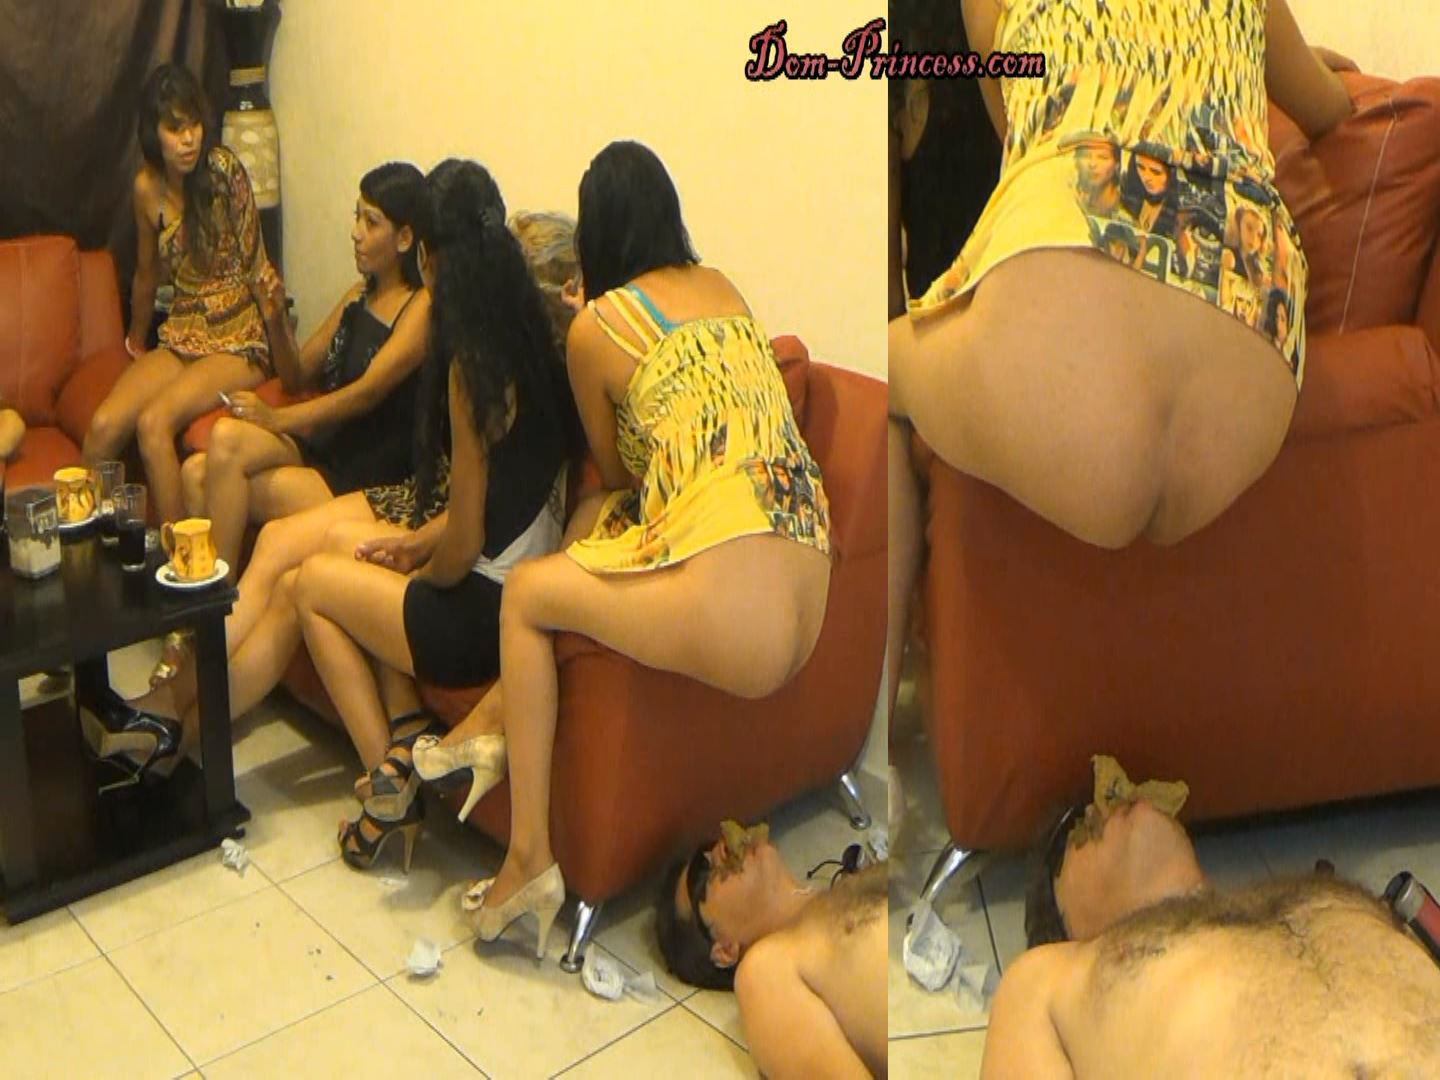 [SCAT-PRINCESS] Human Toilet on the Side Part 5 Ana [FULL HD][1080p][WMV]